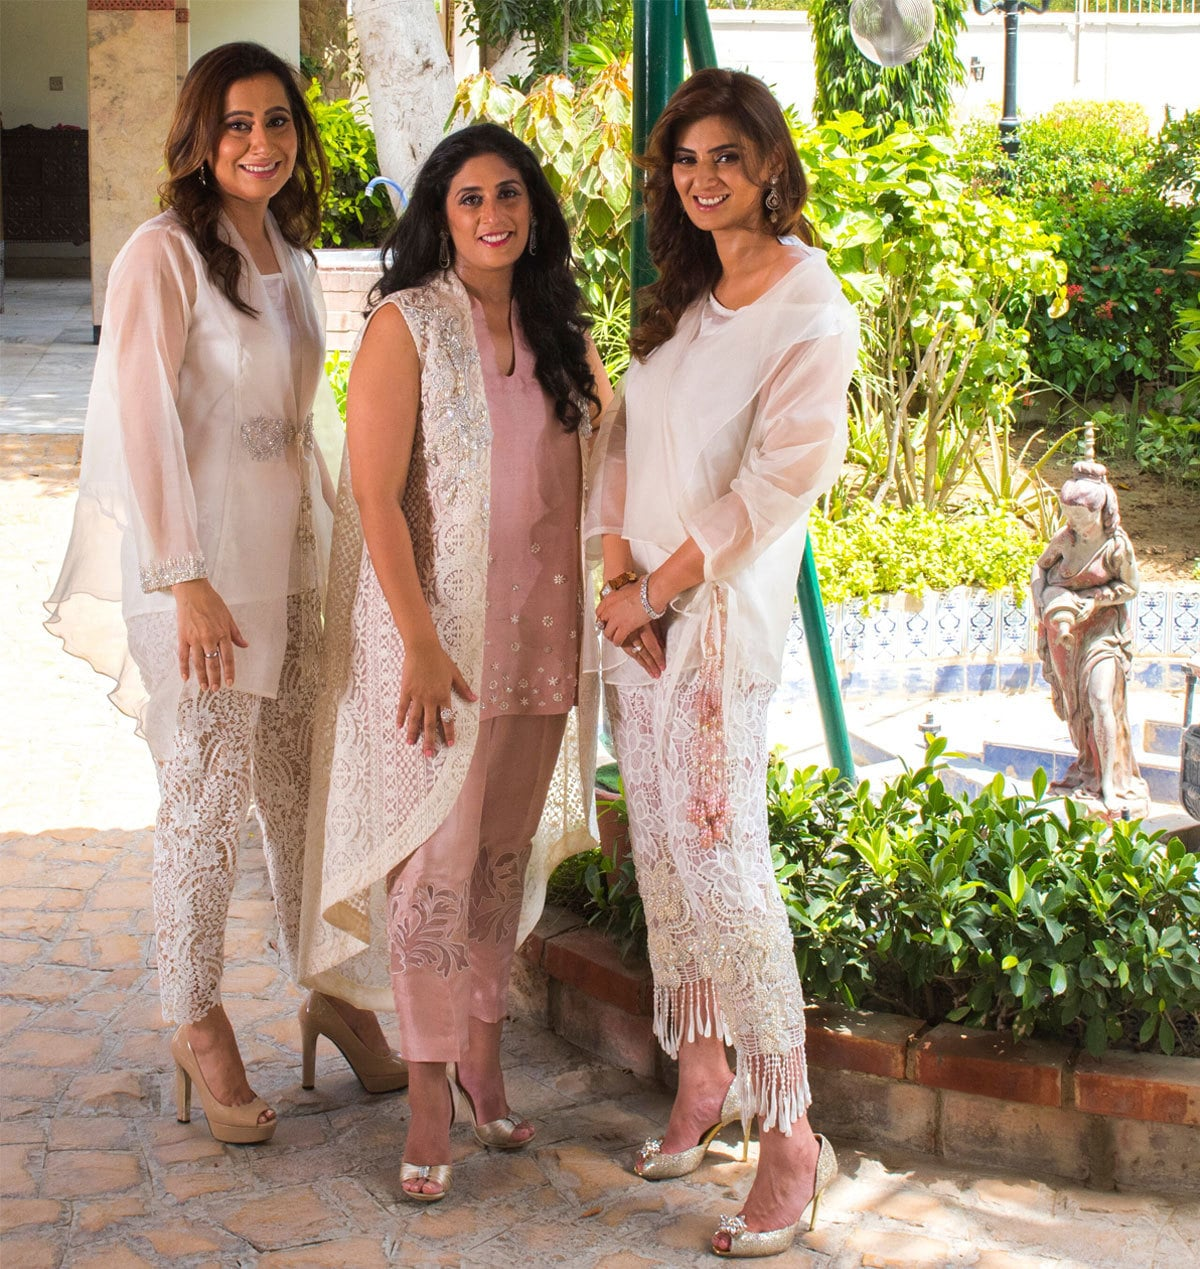 RealWomen AfsheenJunejo, #SaraKoraishy and #NageenRizvi pose for #SanamChaudhri's #antisizesero campaign. Beauty, brains, success and resilience to promote a #positivebodyimage photography - Instagram